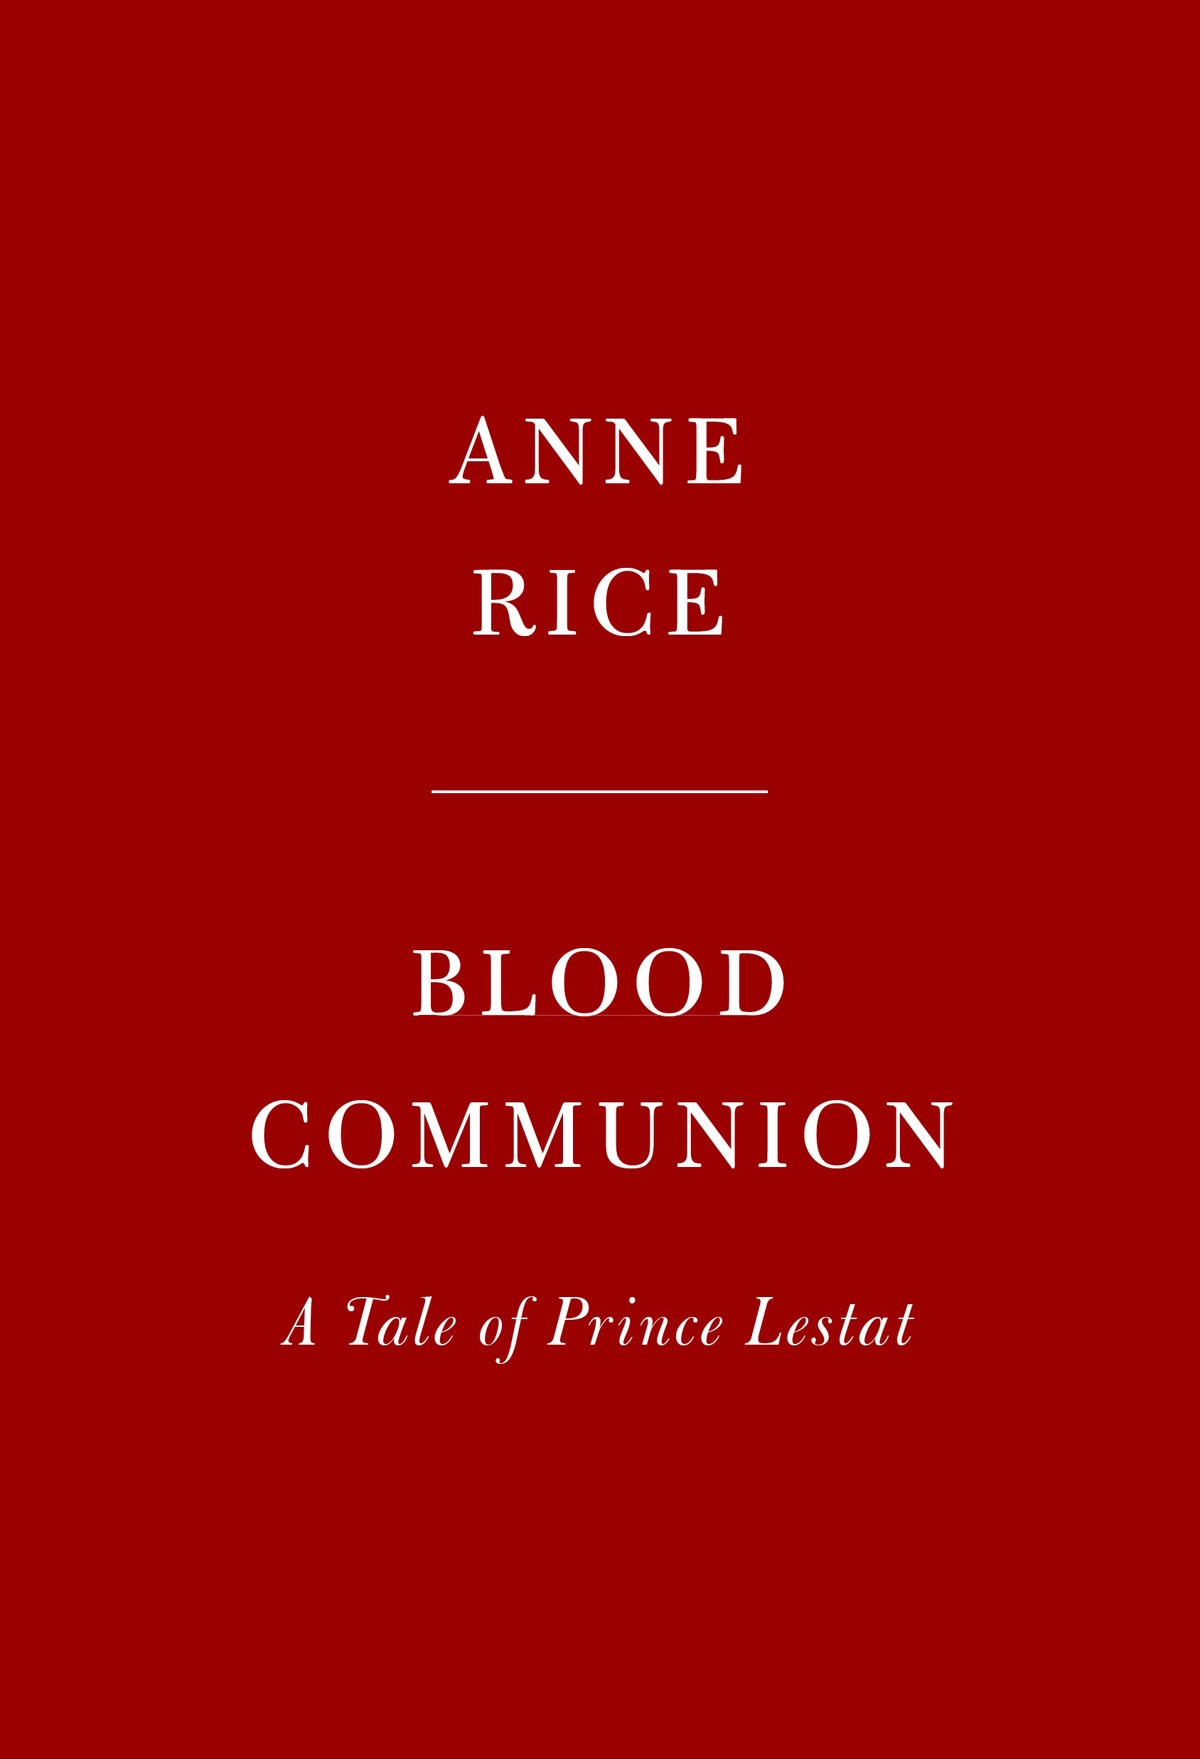 blood communion - Anne Rice Announces New Lestat Novel Blood Communion; TWO More Books on the Way!